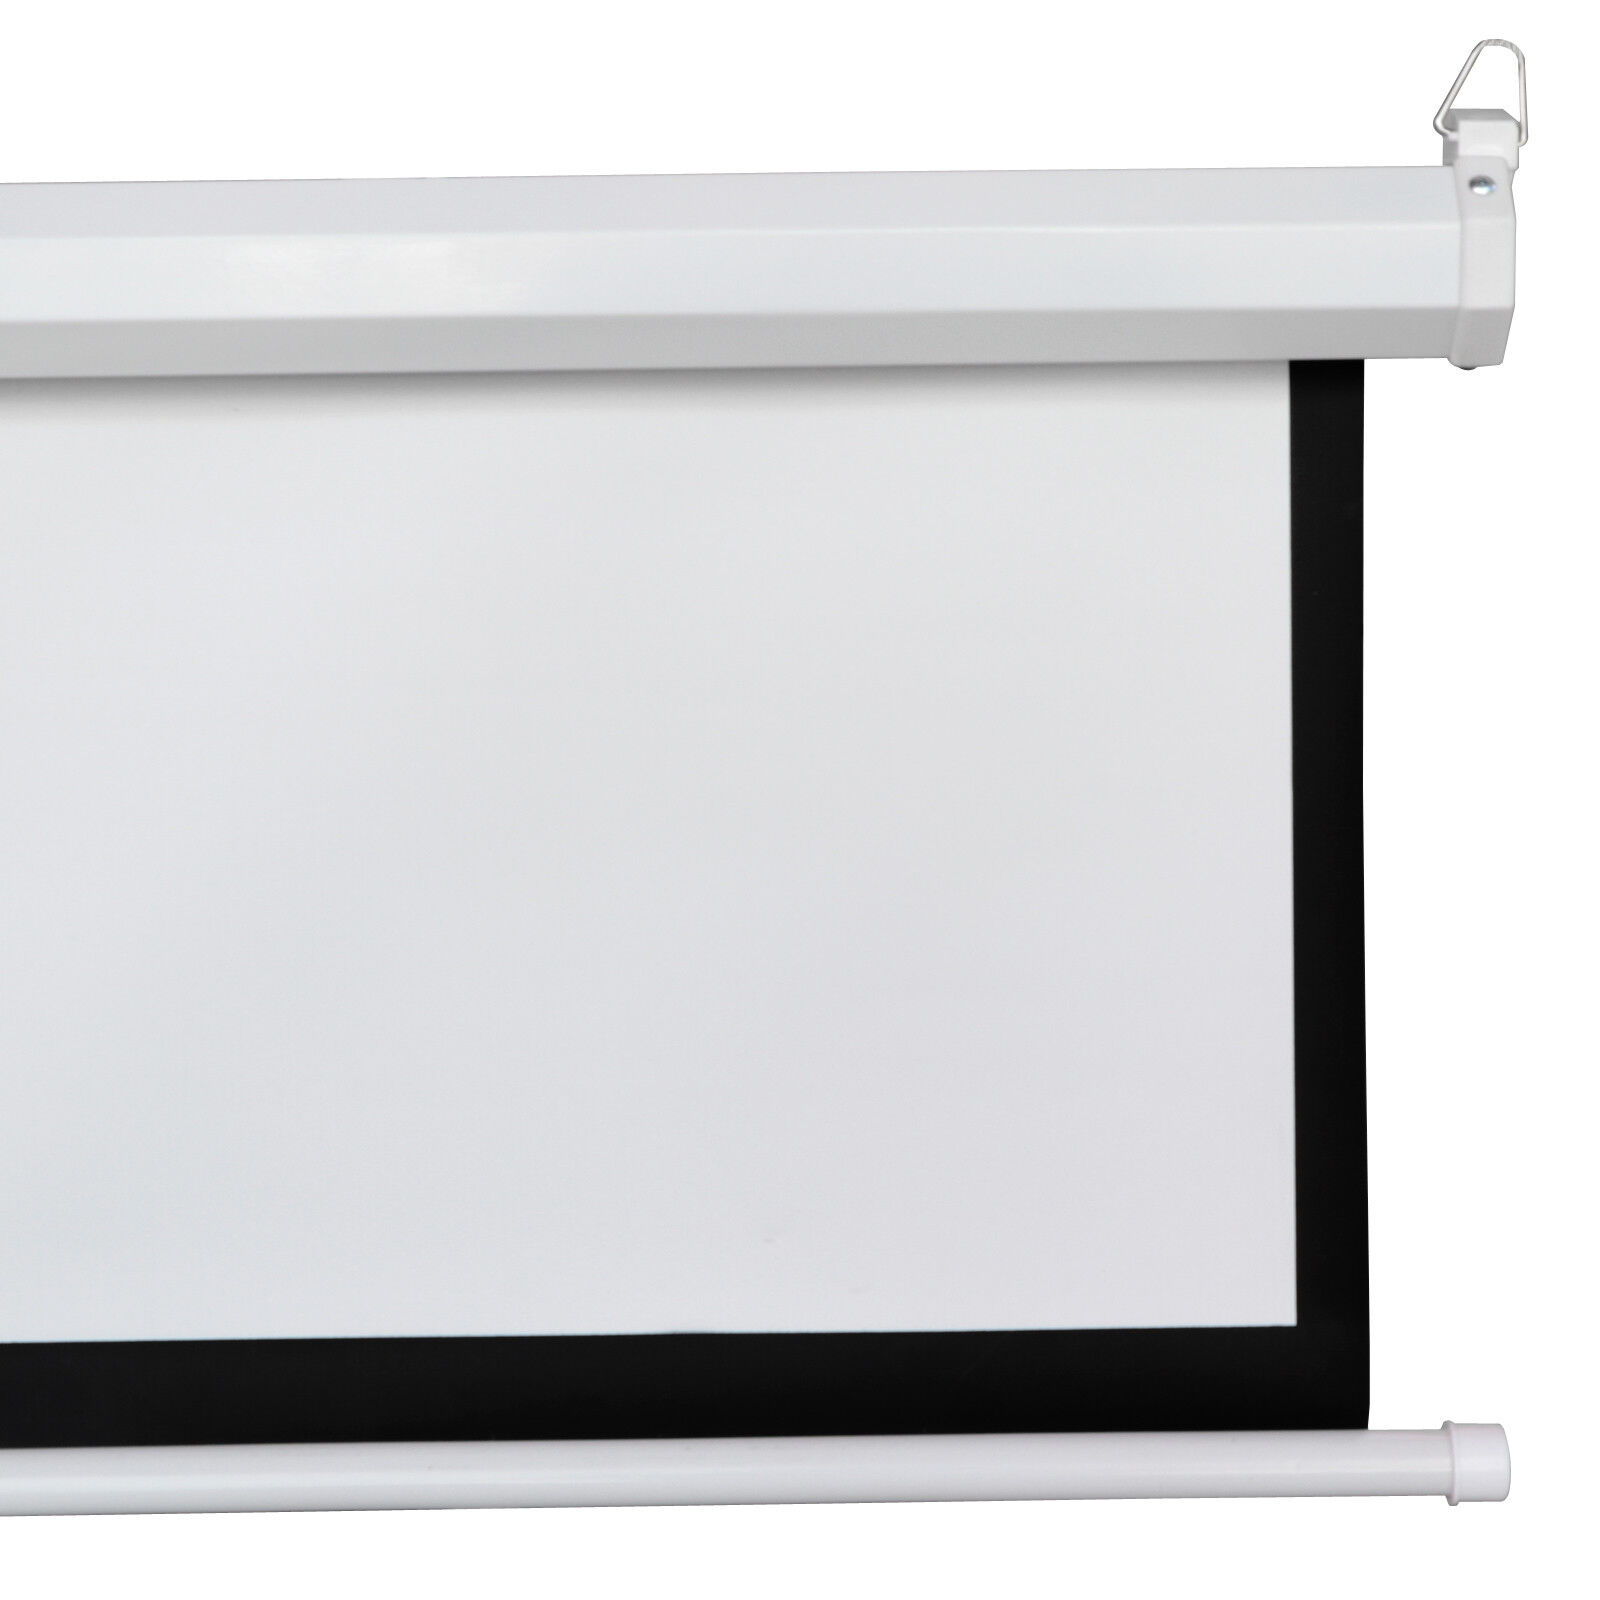 HD 100″ 16:9 Manual Pull Down Projector SCREEN MATERIAL 1.1 GAIN Matte White Consumer Electronics